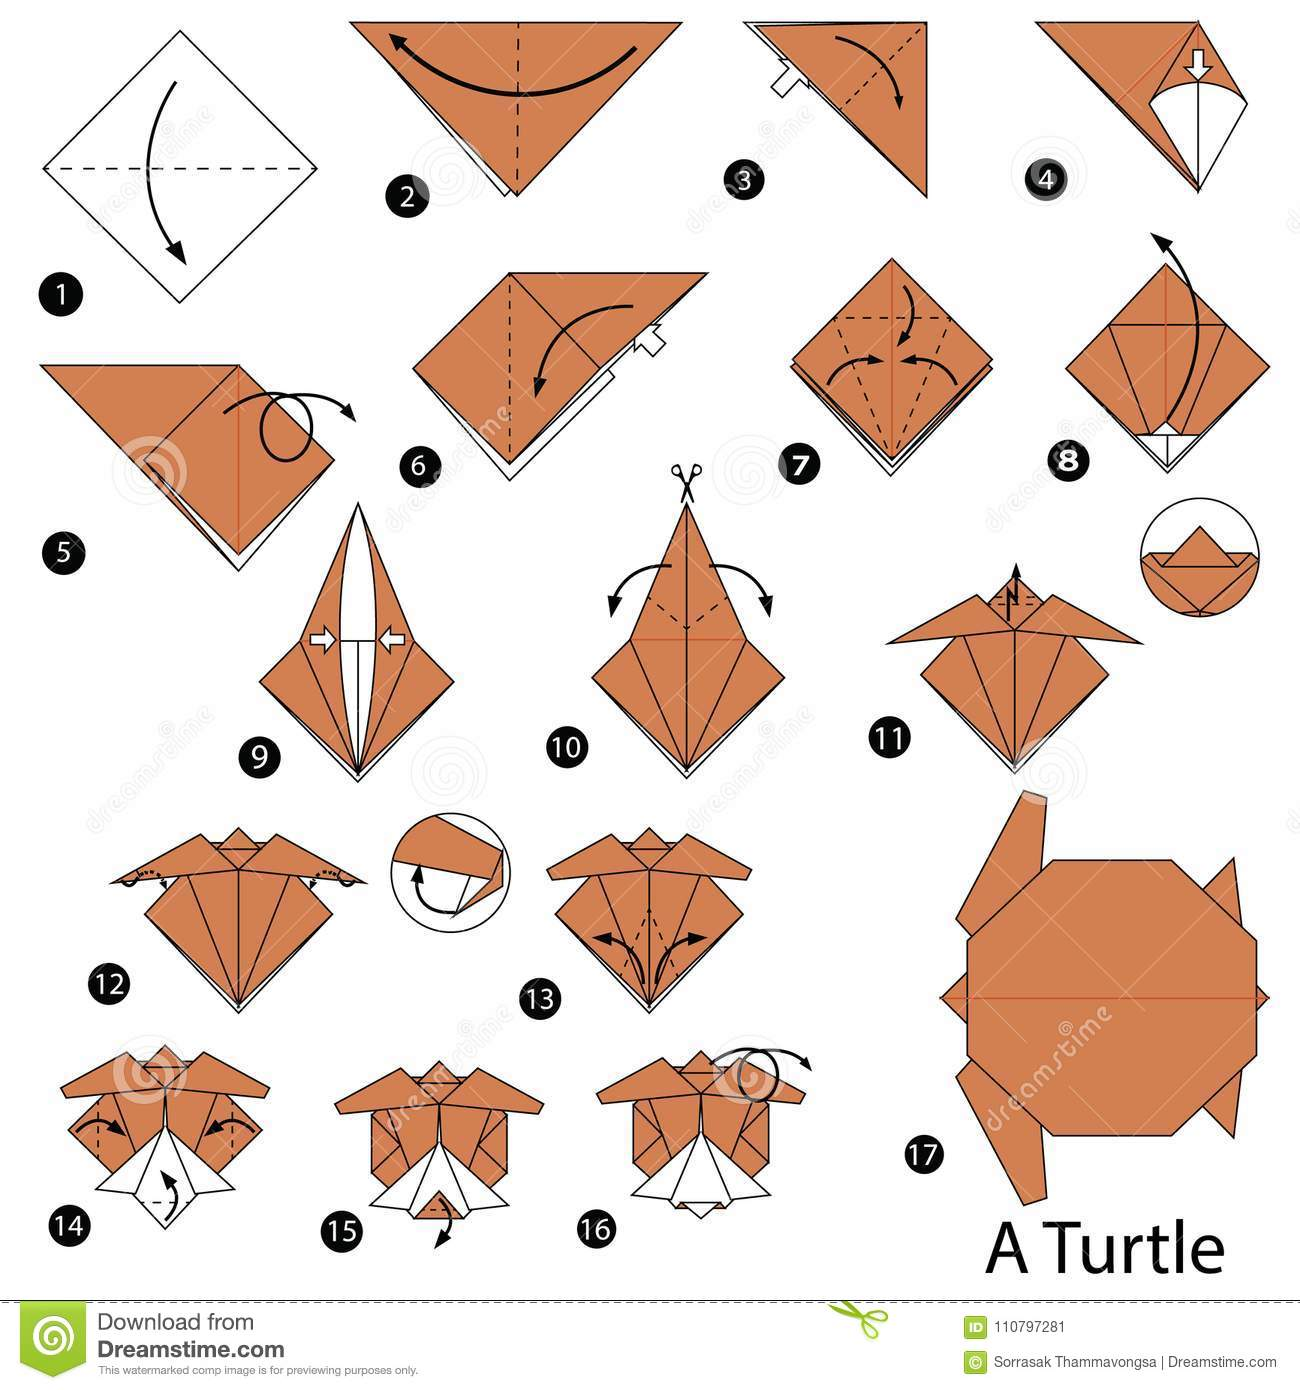 Origami Turtle Easy How To Make An Easy Origami Turtle Step By ... | 1390x1300